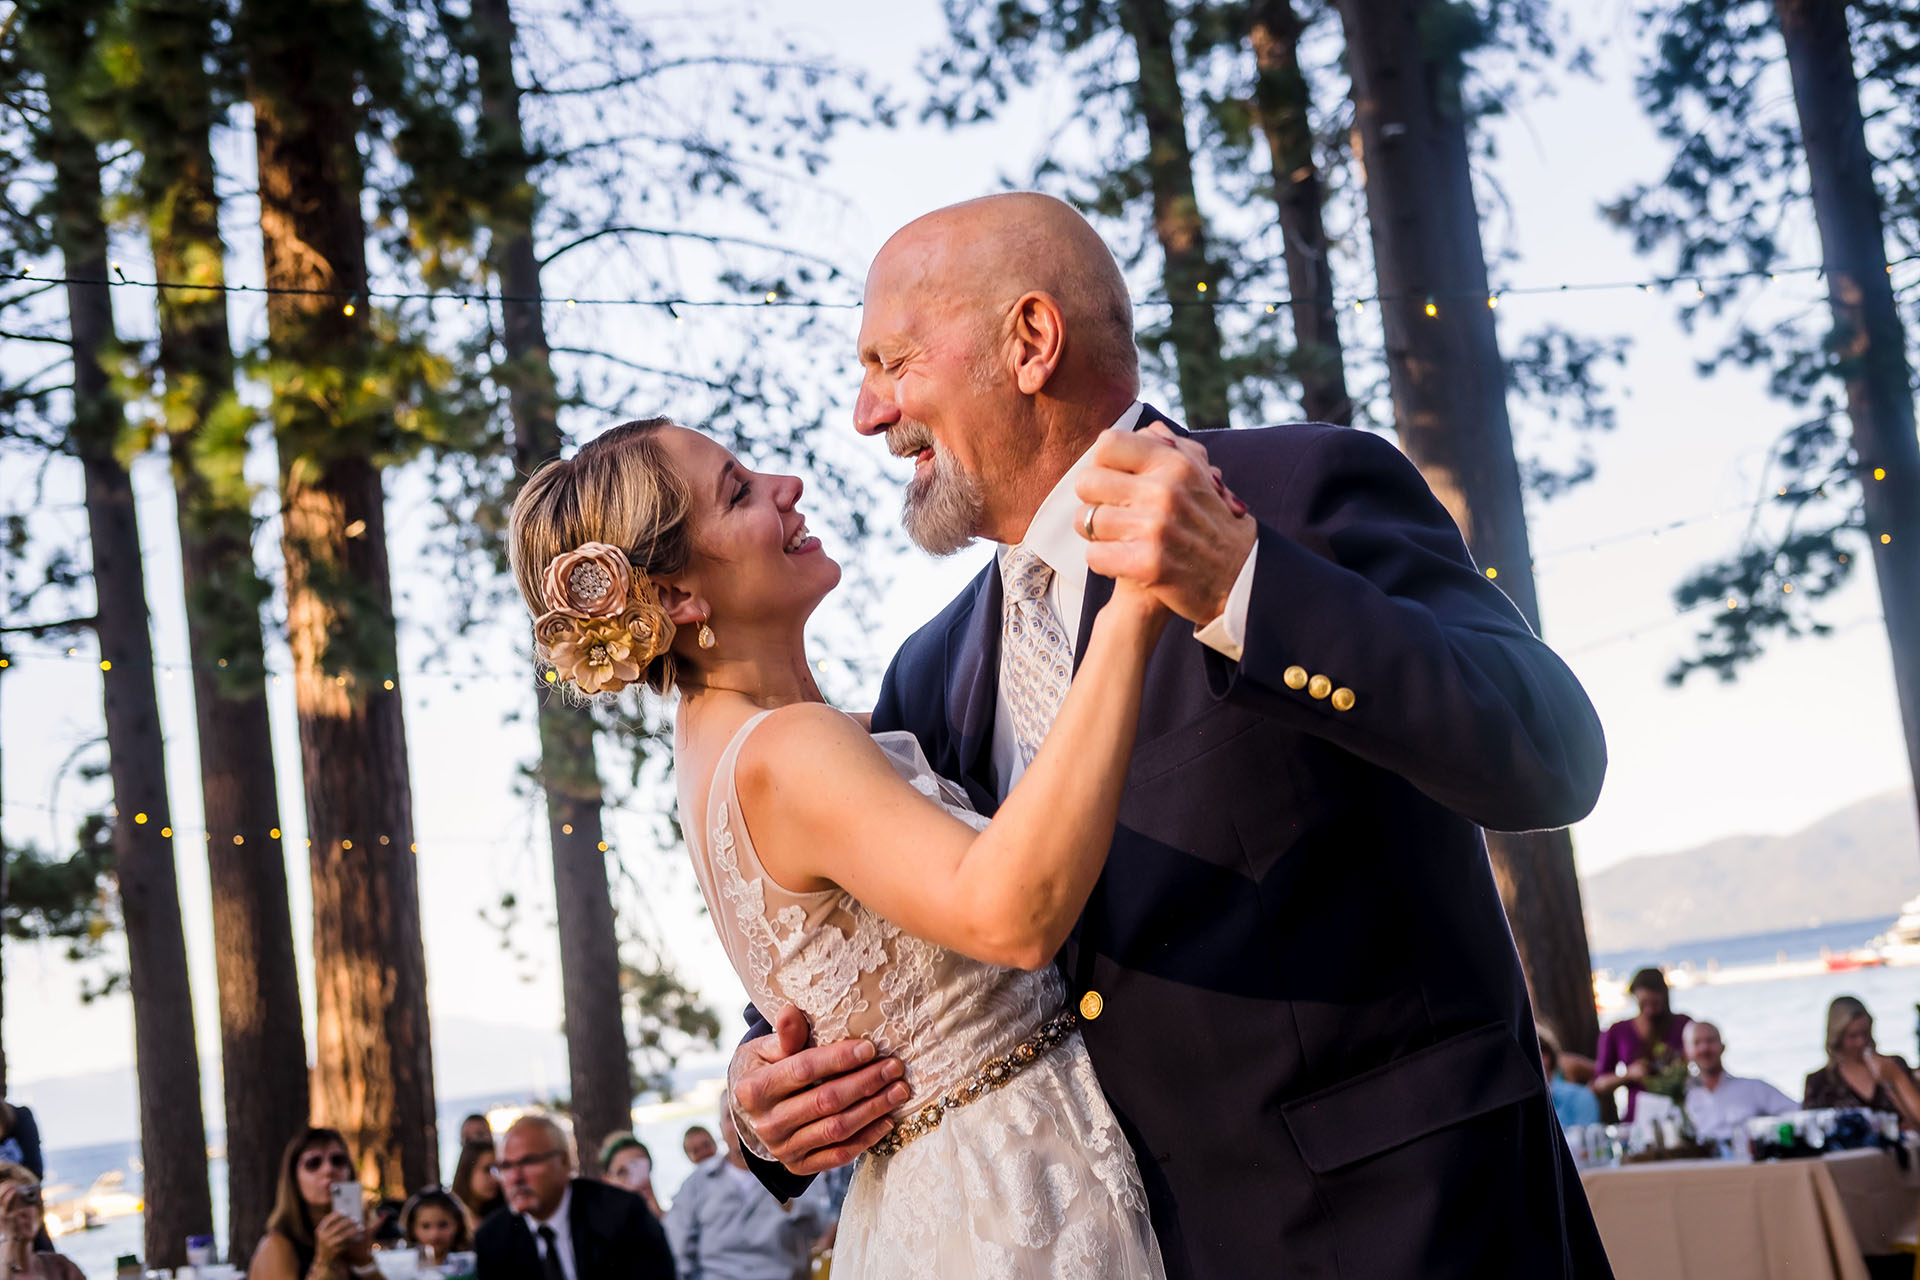 Shaunte Dittmar, of California, is a wedding photographer for -